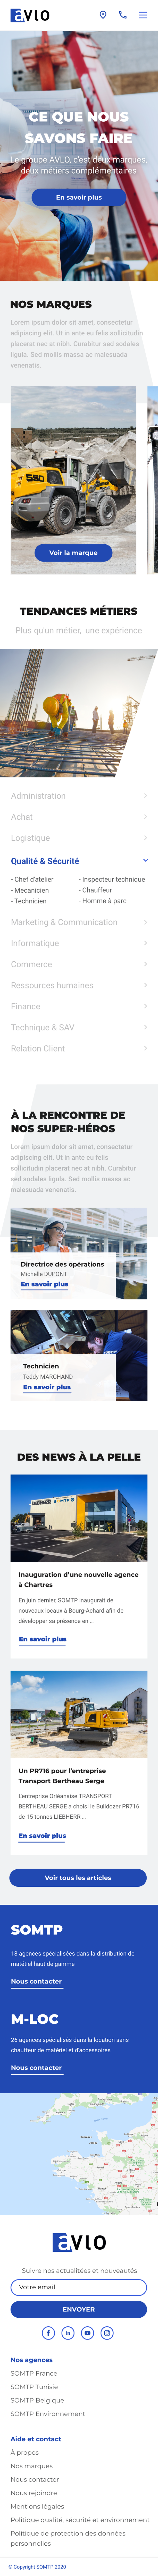 Agence-DND-Creation-Site-ECommerce-Avlo